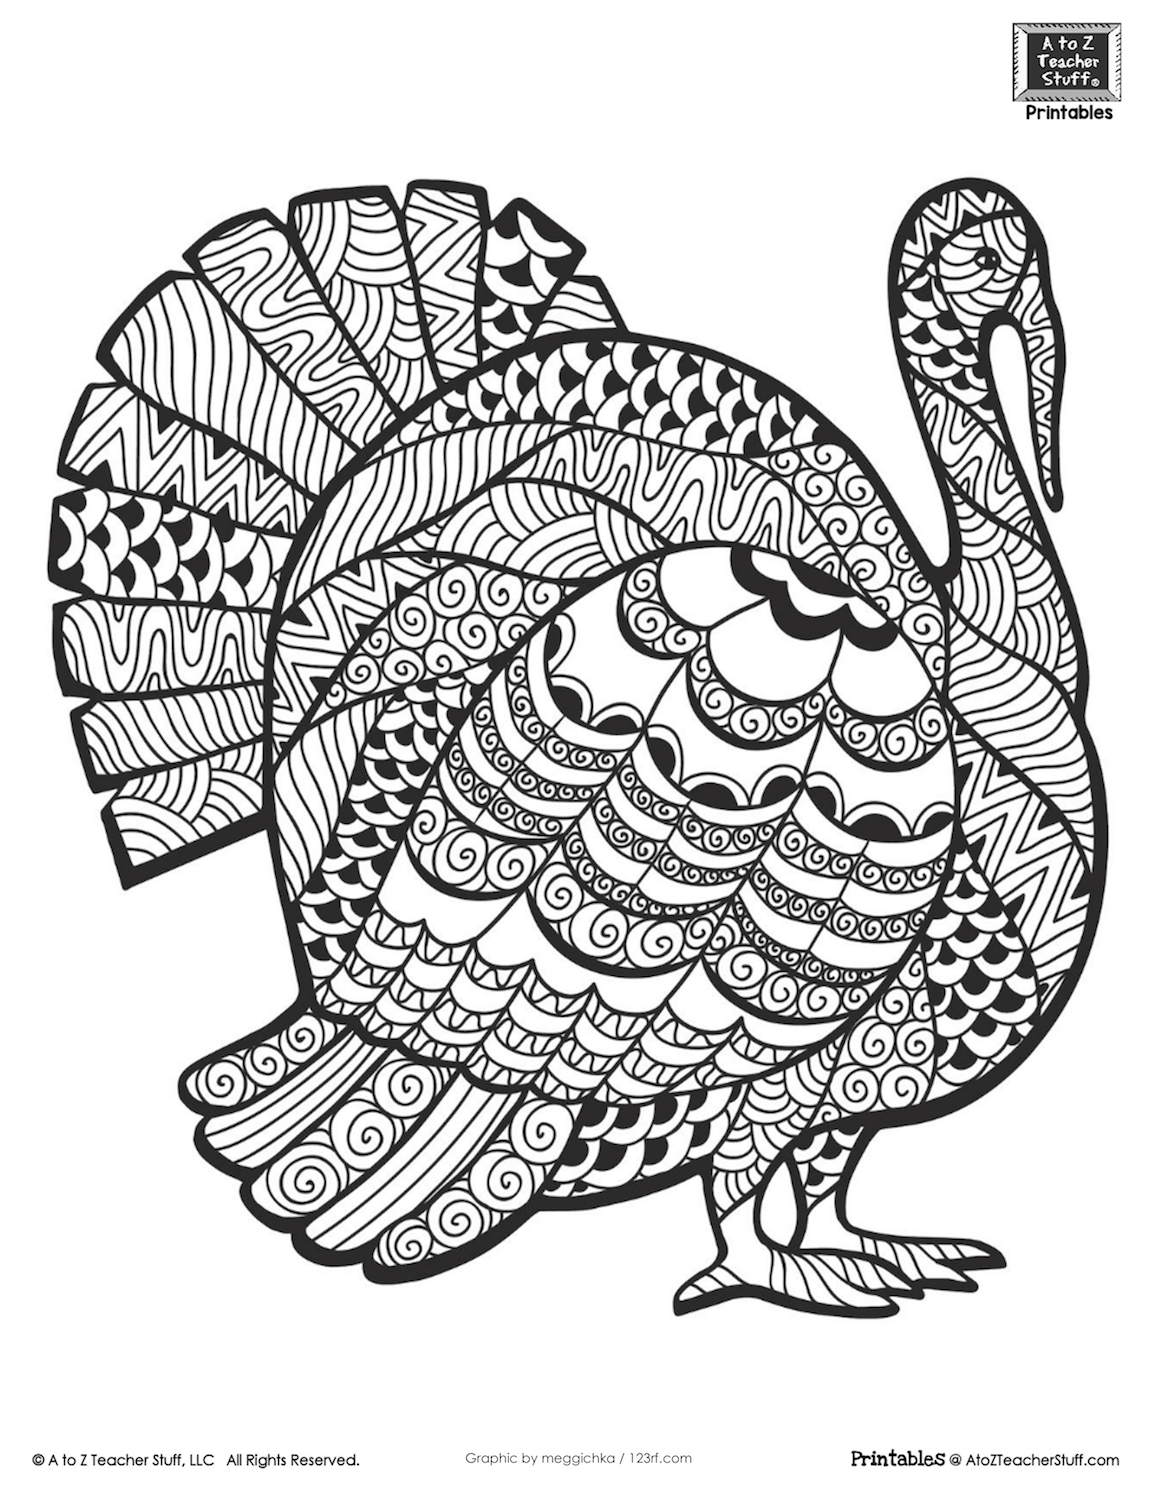 Thanksgiving Coloring Pages Thanksgiving Coloring Book Thanksgiving Coloring Sheets Turkey Coloring Pages